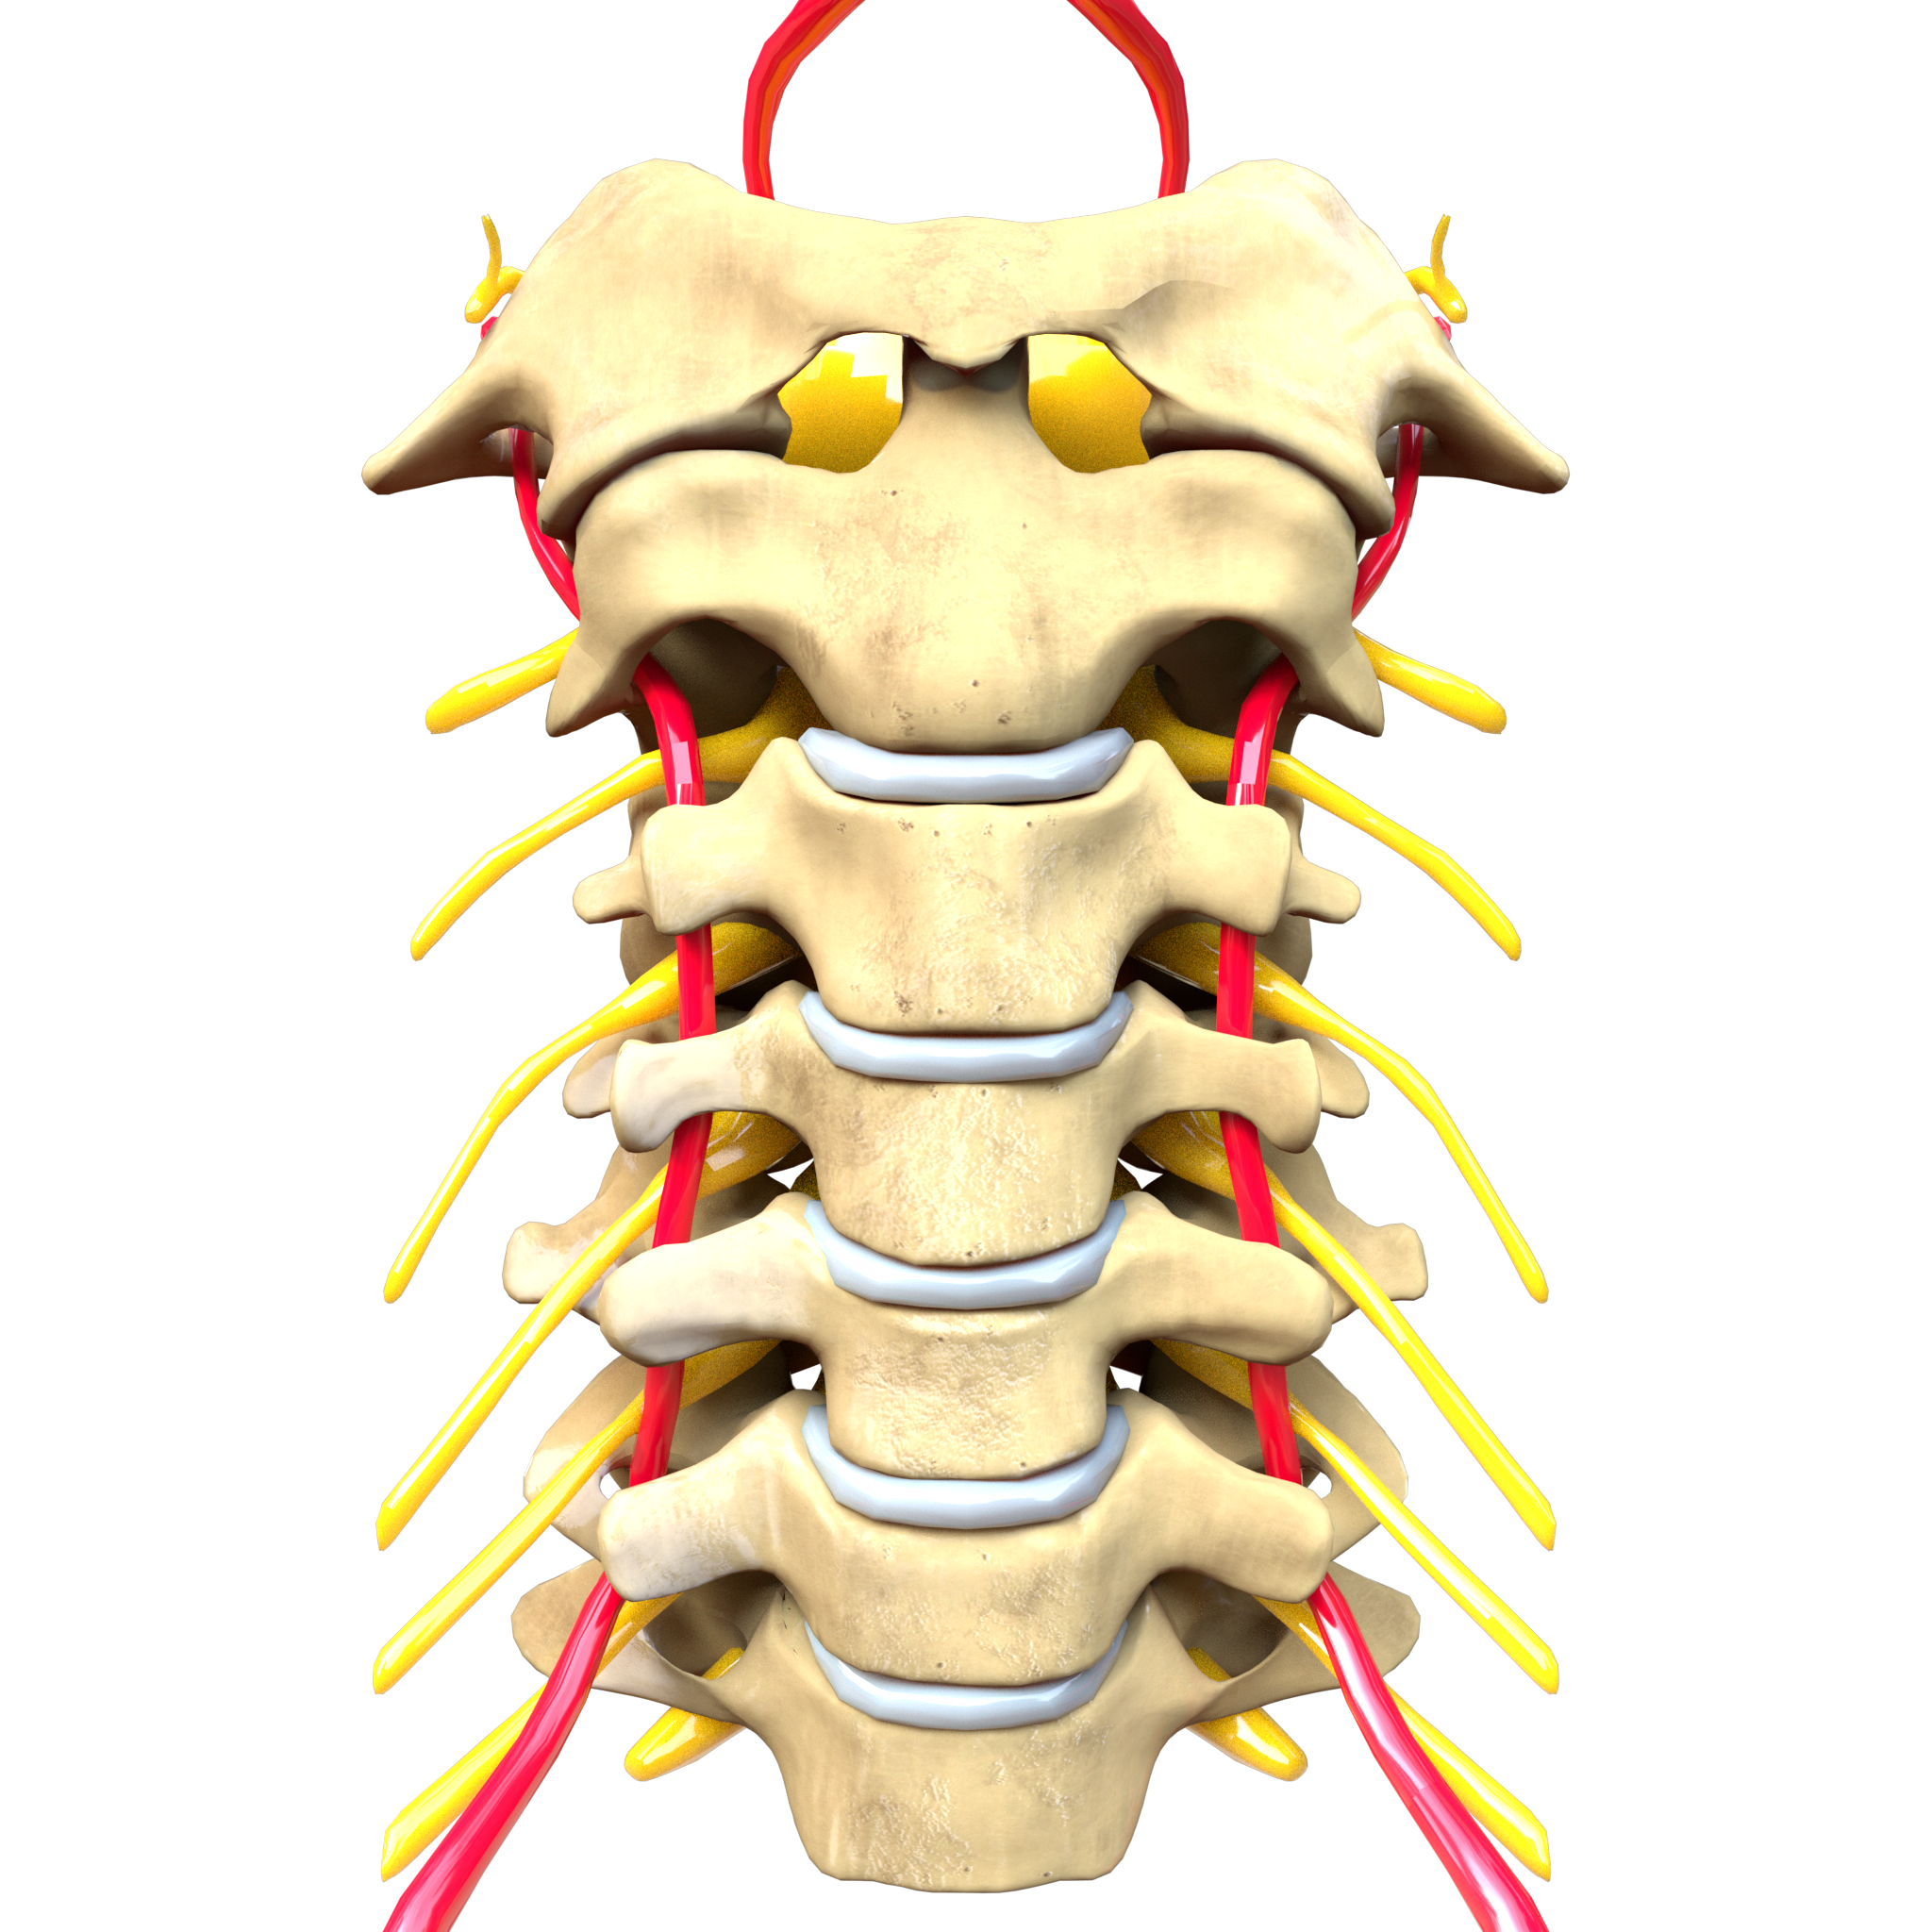 Filecervical Spine Computer Generated Imageg Wikimedia Commons